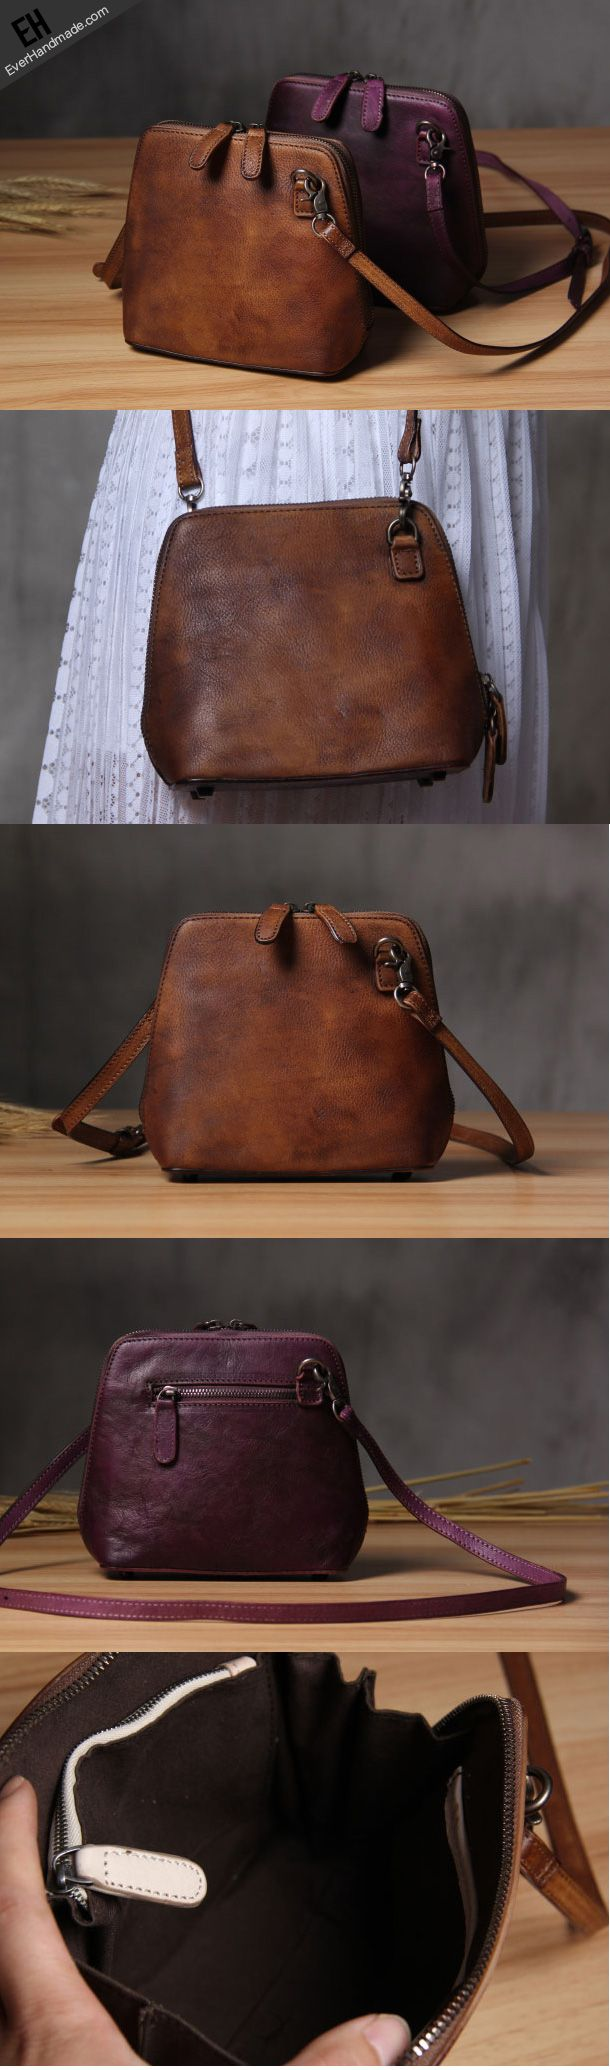 Handmade Leather phone purse shoulder bag for women leather